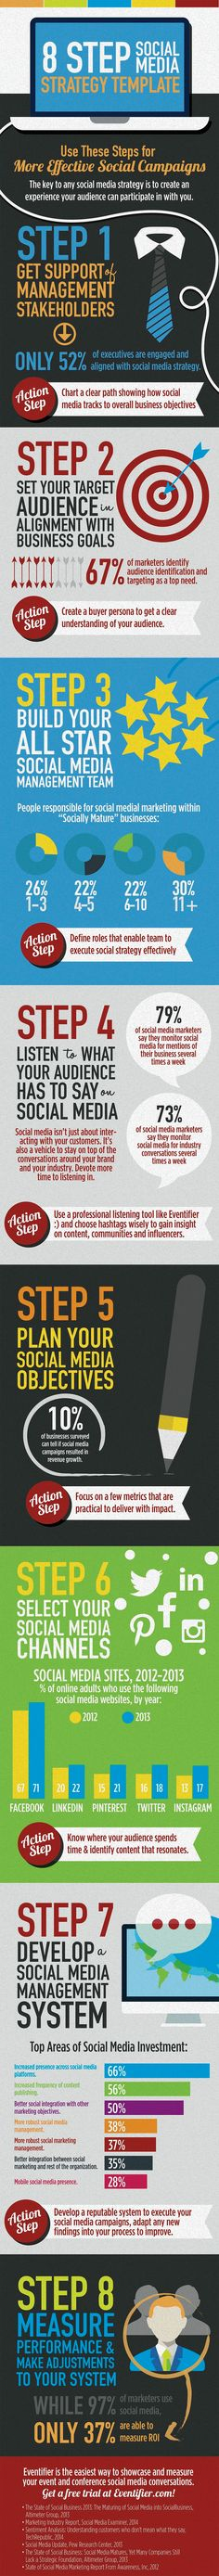 [INFOGRAPHIC] 8 Step Social Media Strategy Template Steps for a More Effective Social Campaign; Details.